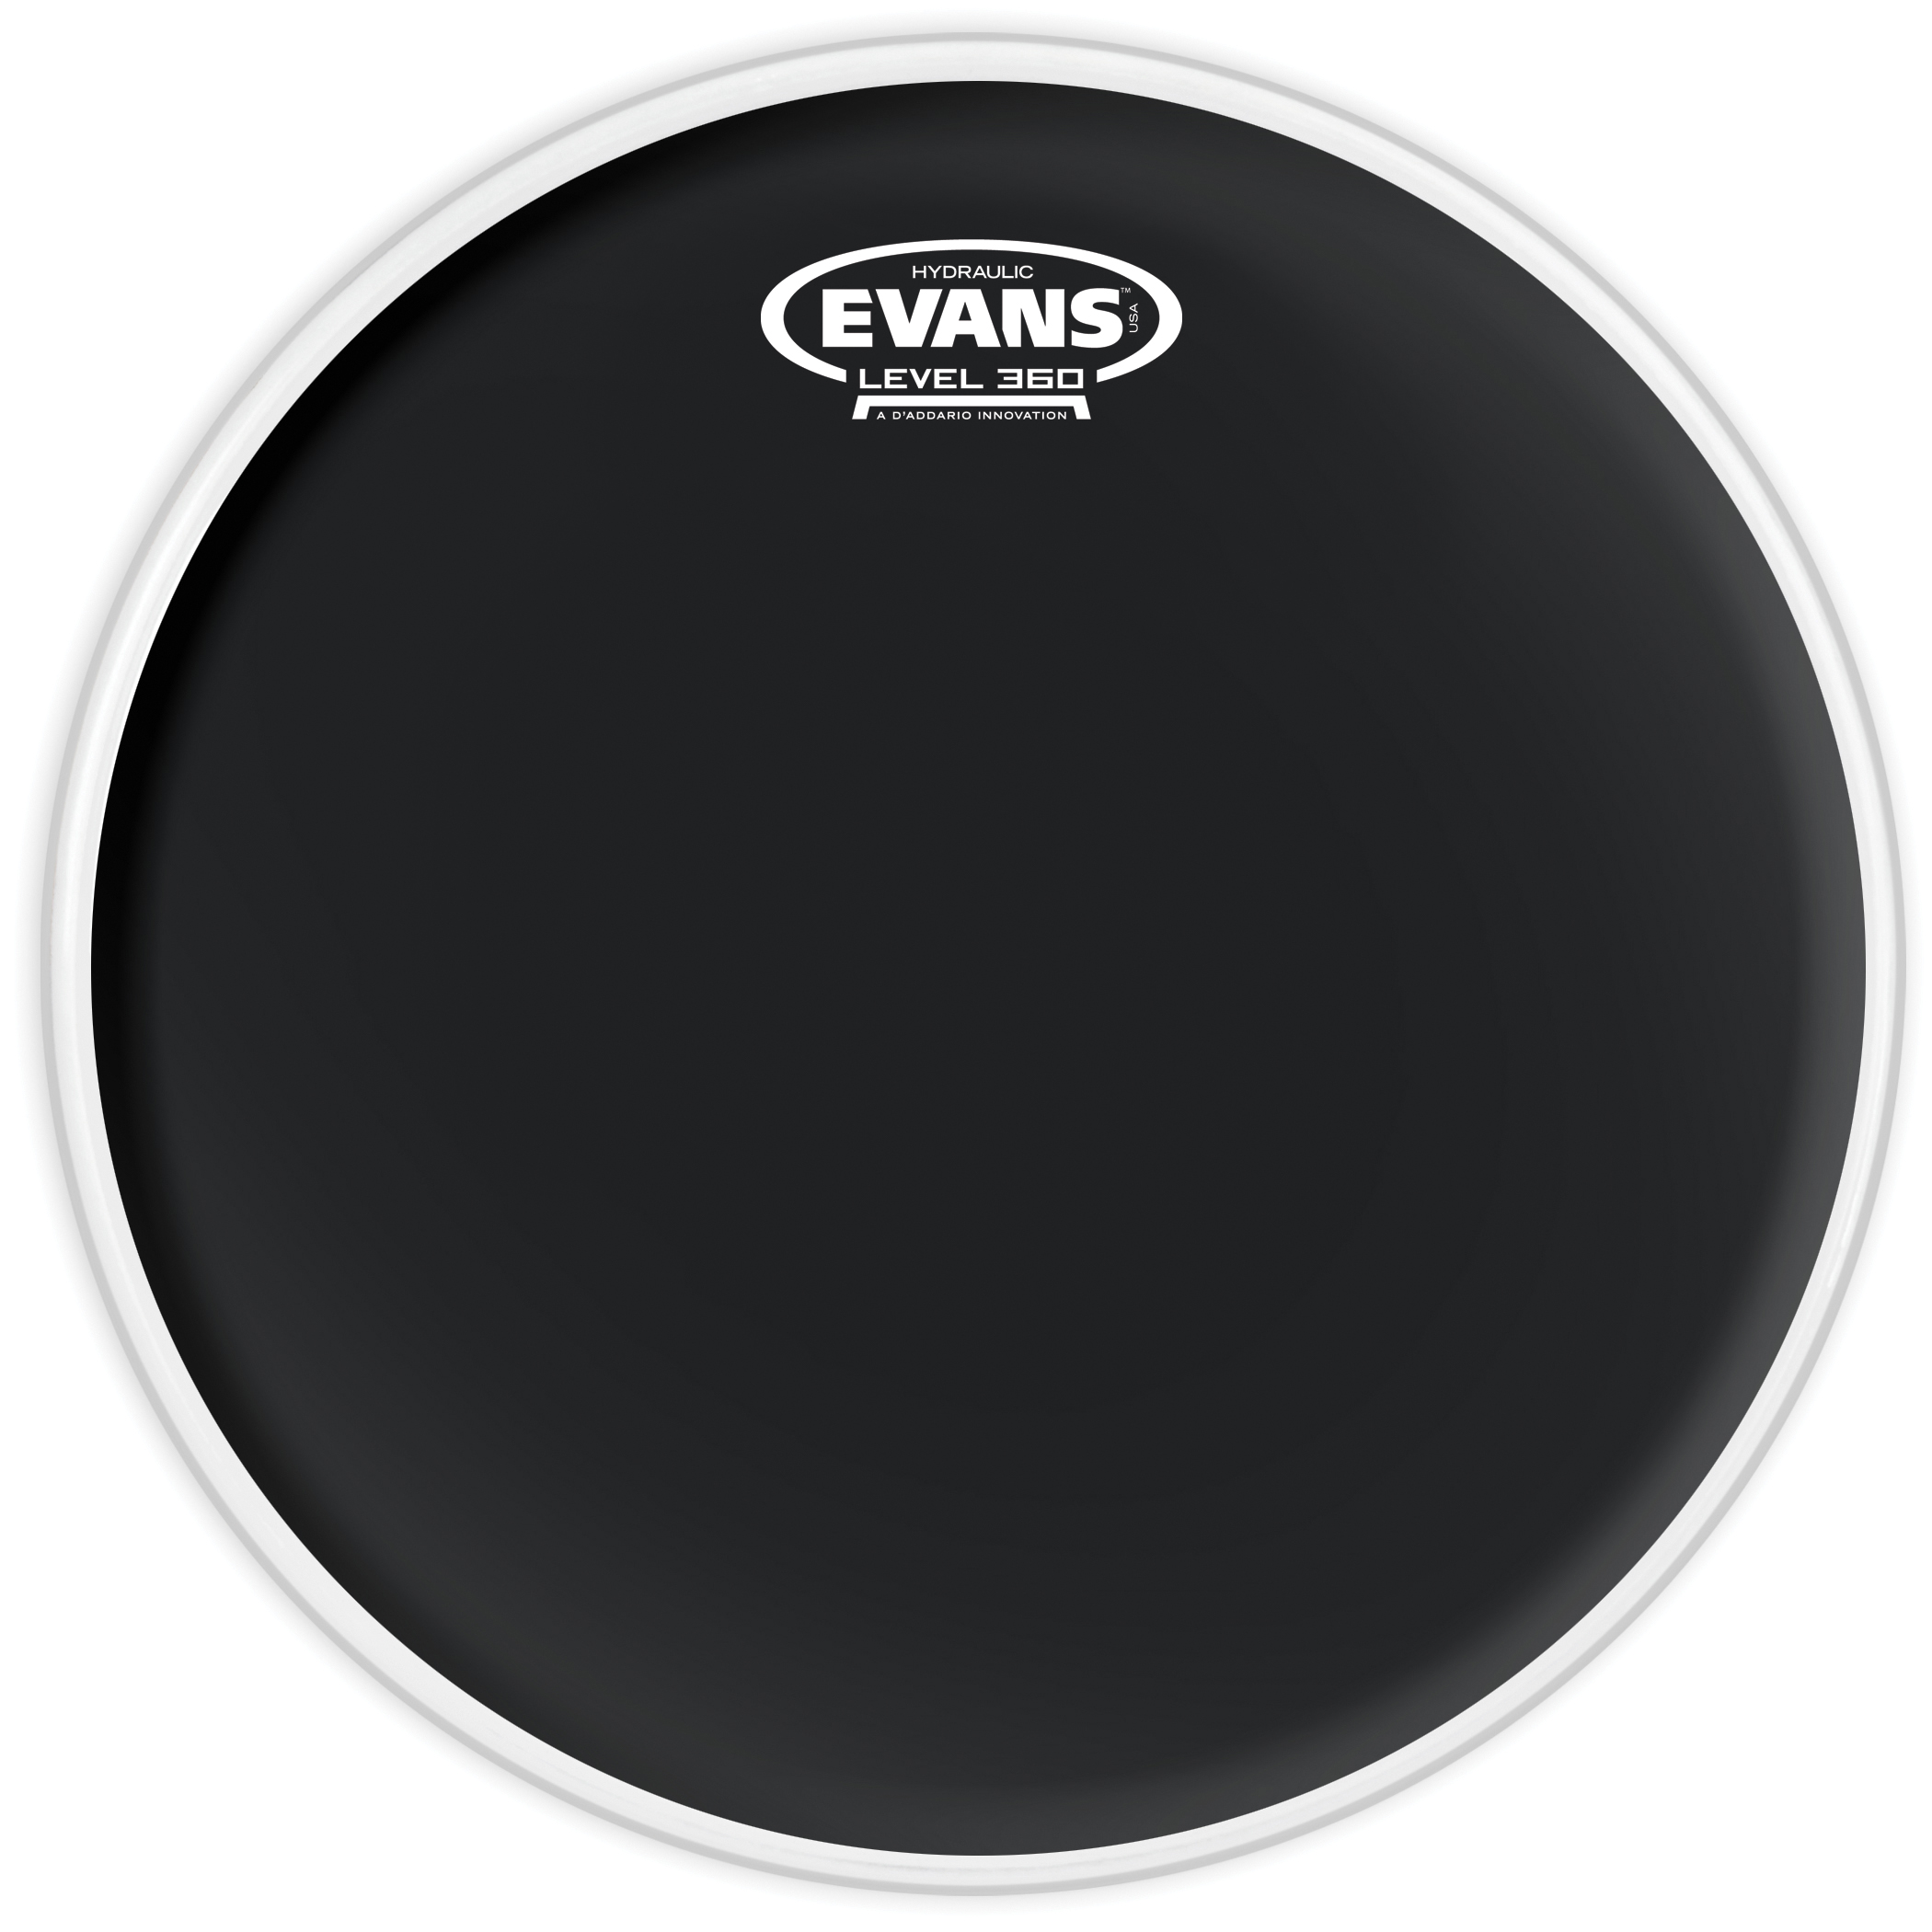 Evans Hydraulic Black Drum Head 12